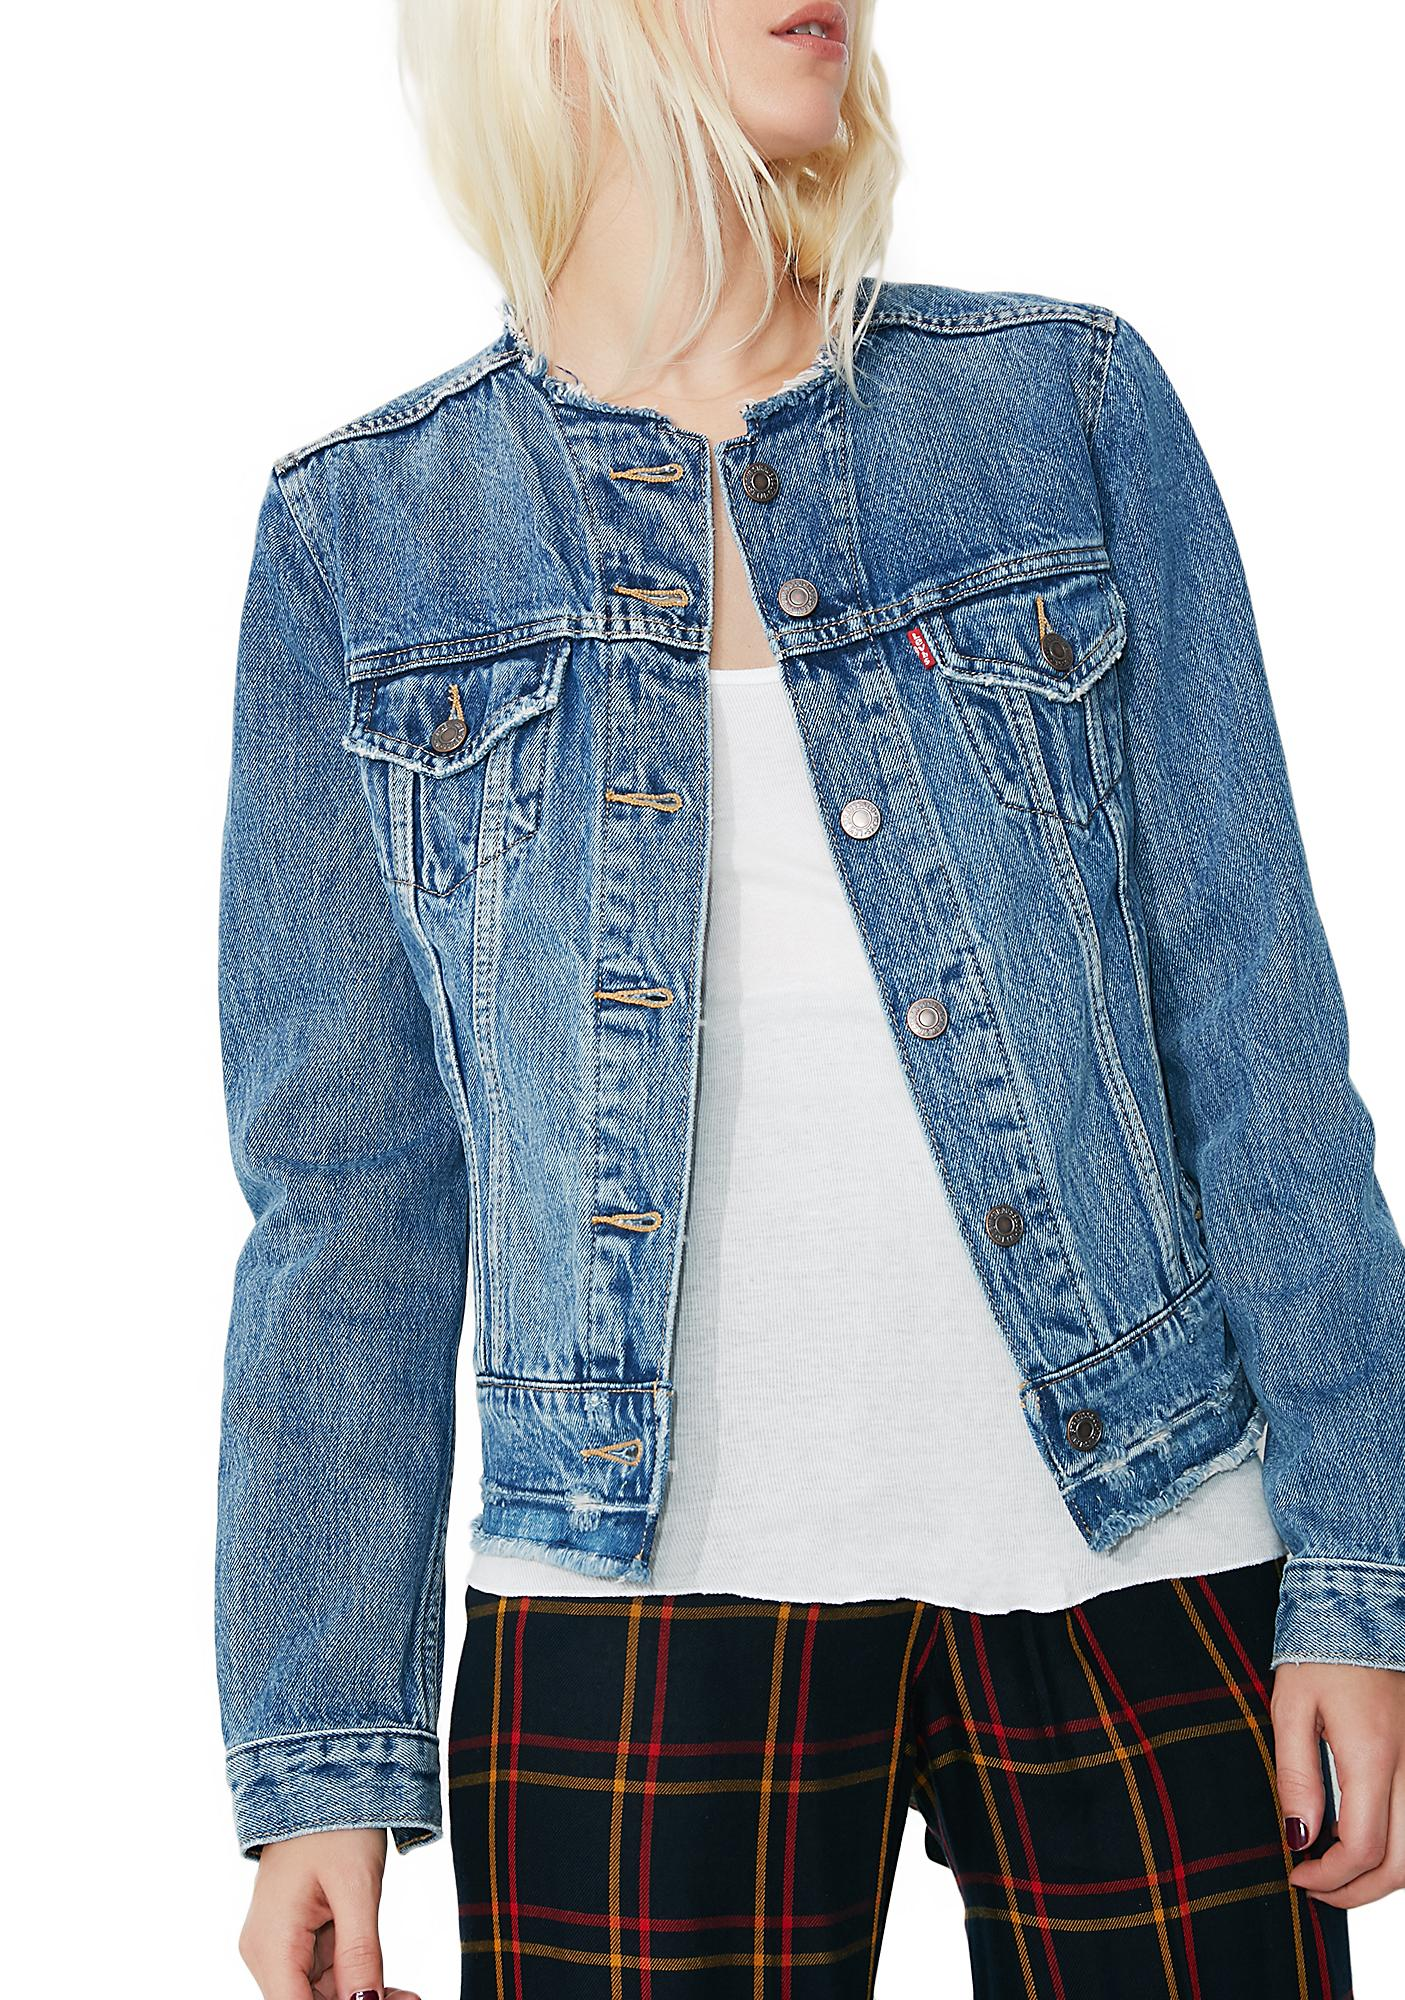 Levis Altered Trucker Jacket